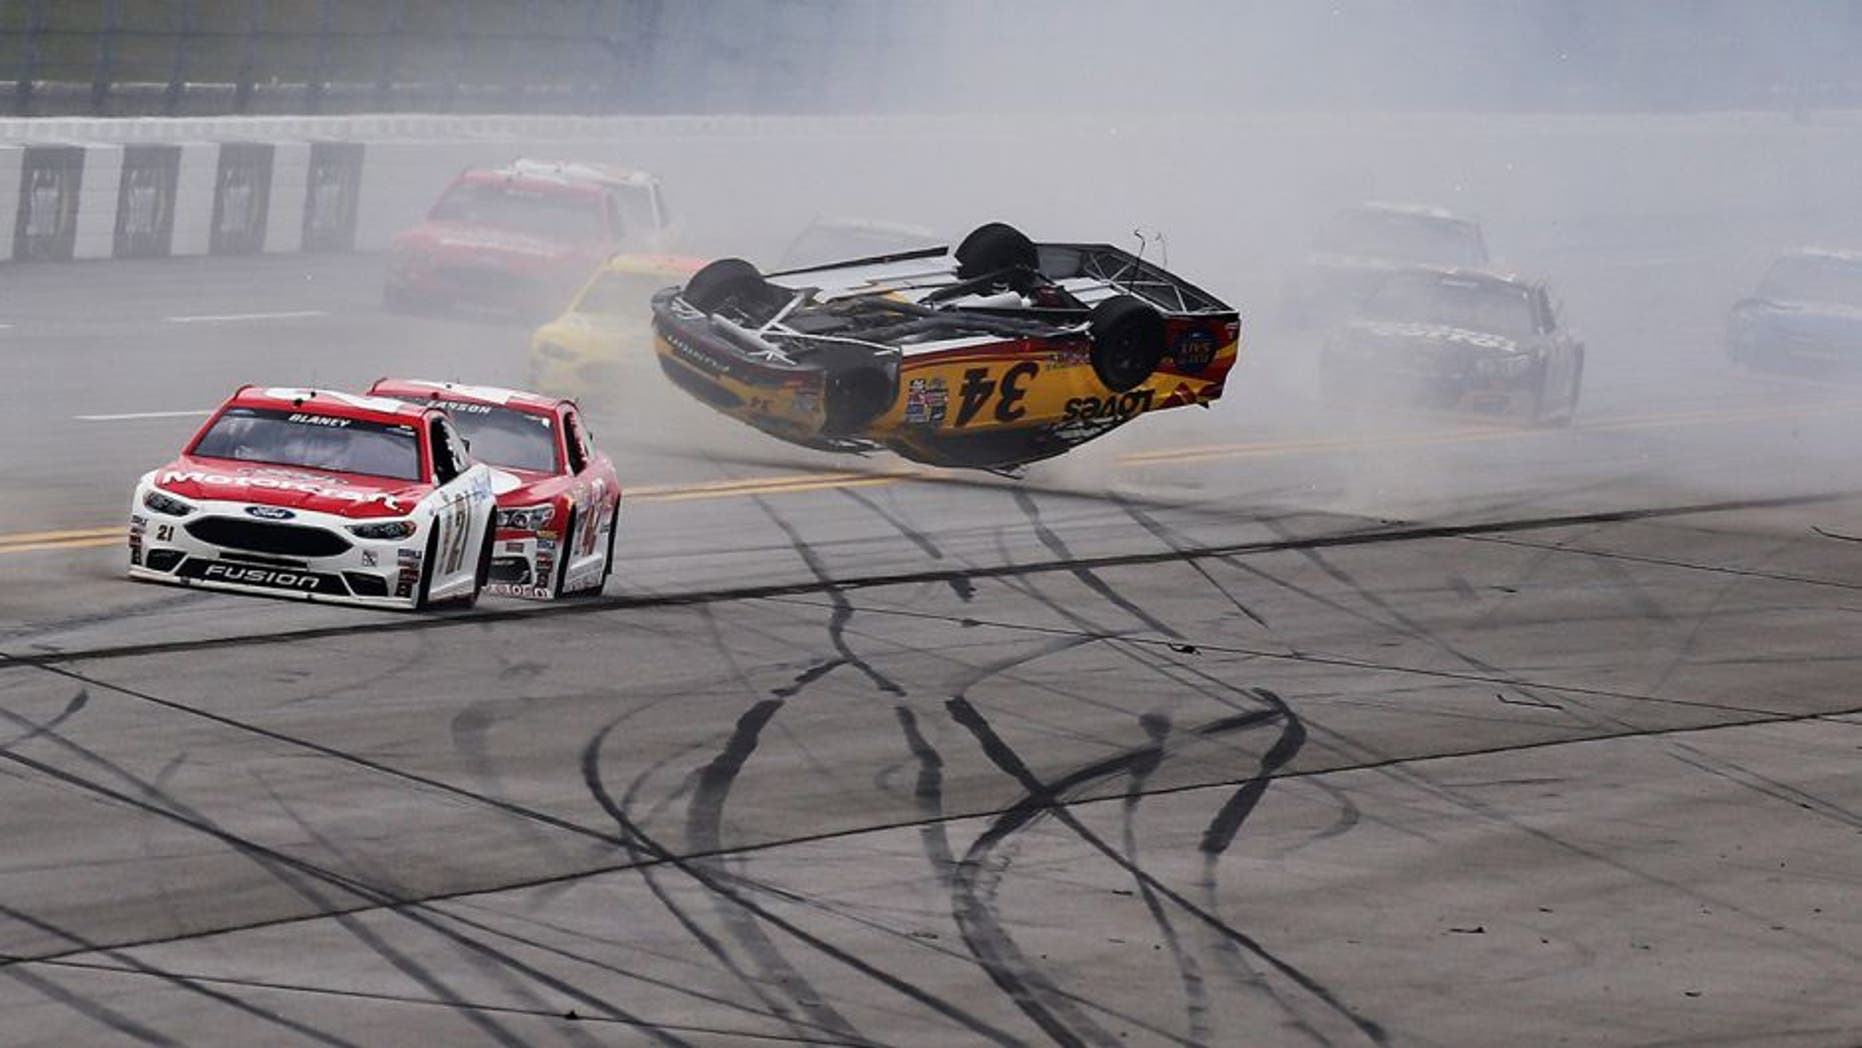 TALLADEGA, AL - MAY 01: Chris Buescher, driver of the #34 Love's Travel Stops/CSX-Play it Safe Ford, has an on track incident during the NASCAR Sprint Cup Series GEICO 500 at Talladega Superspeedway on May 1, 2016 in Talladega, Alabama. (Photo by Jerry Markland/Getty Images)